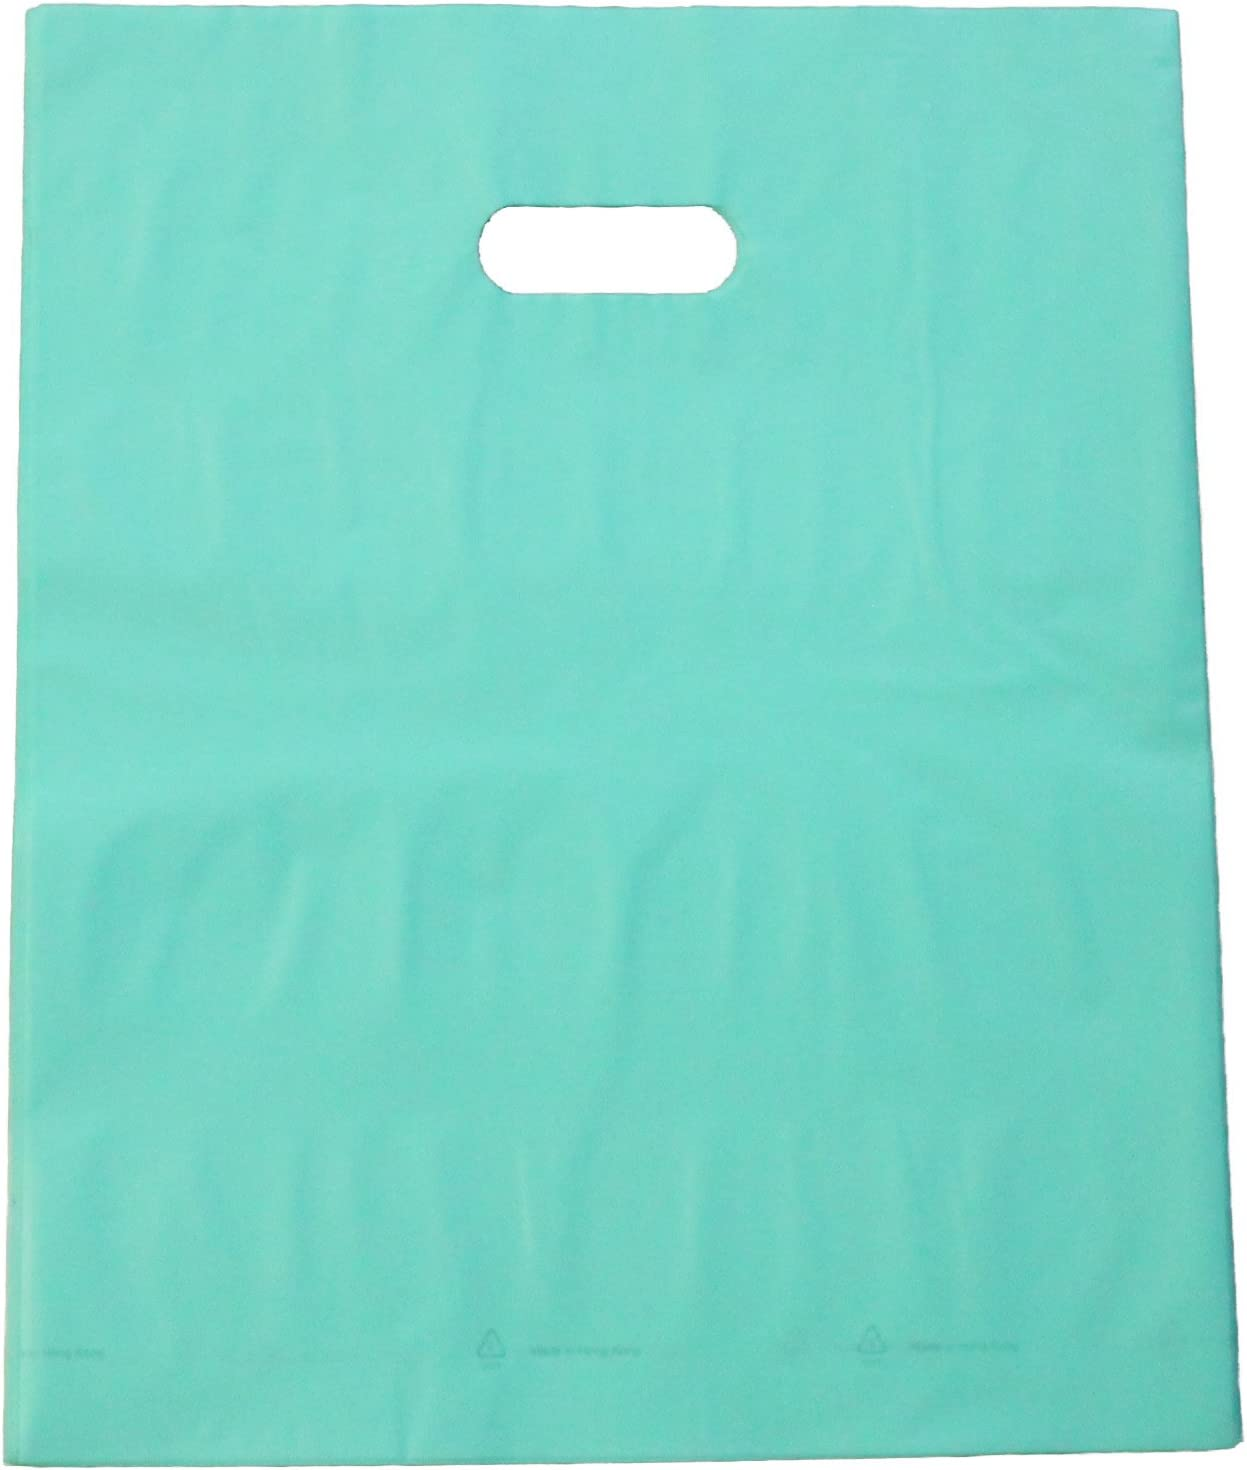 Retail Use Bags 100pcs 9x12 ~Pink Frosty Plastic Merchandise Bags wHandles